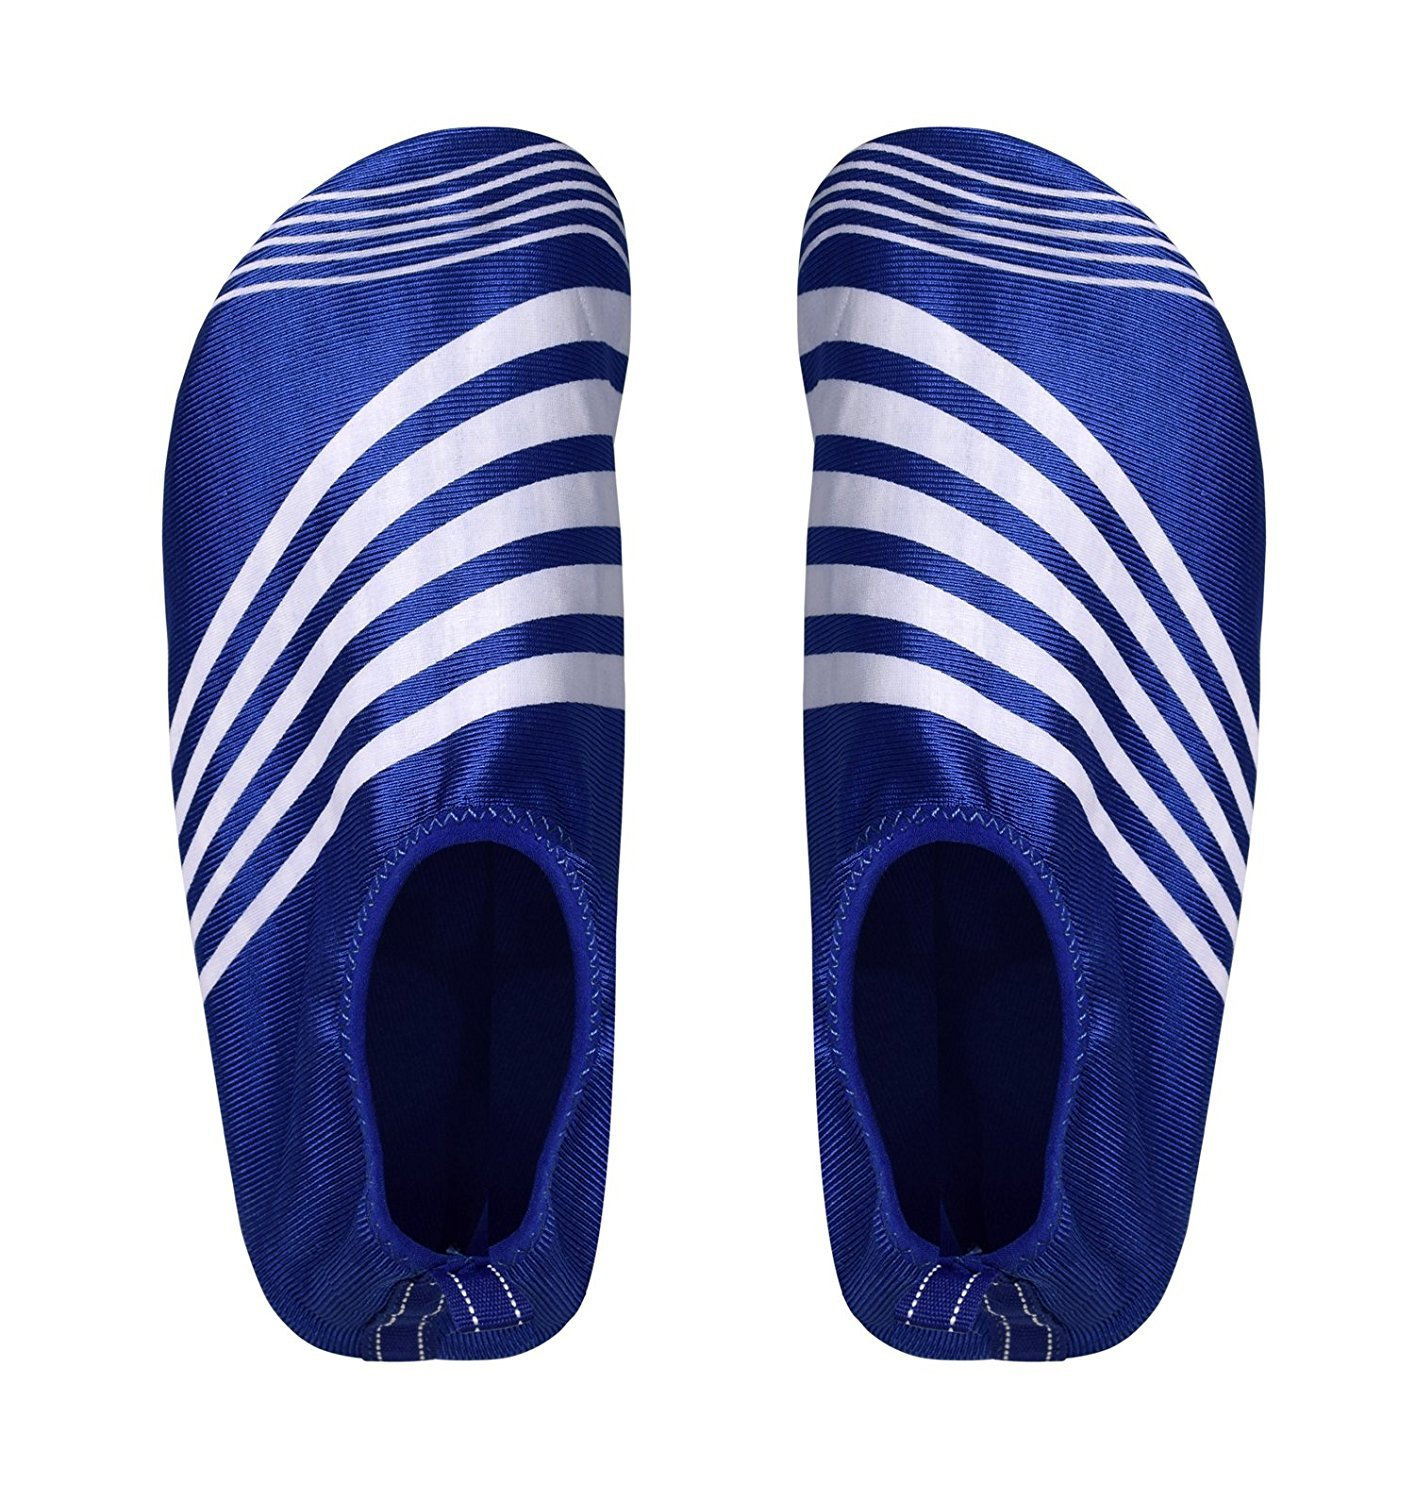 Peach Couture Mens Athletic Water Shoes Slip on Quick Drying Aqua Socks (Large, Blue White)